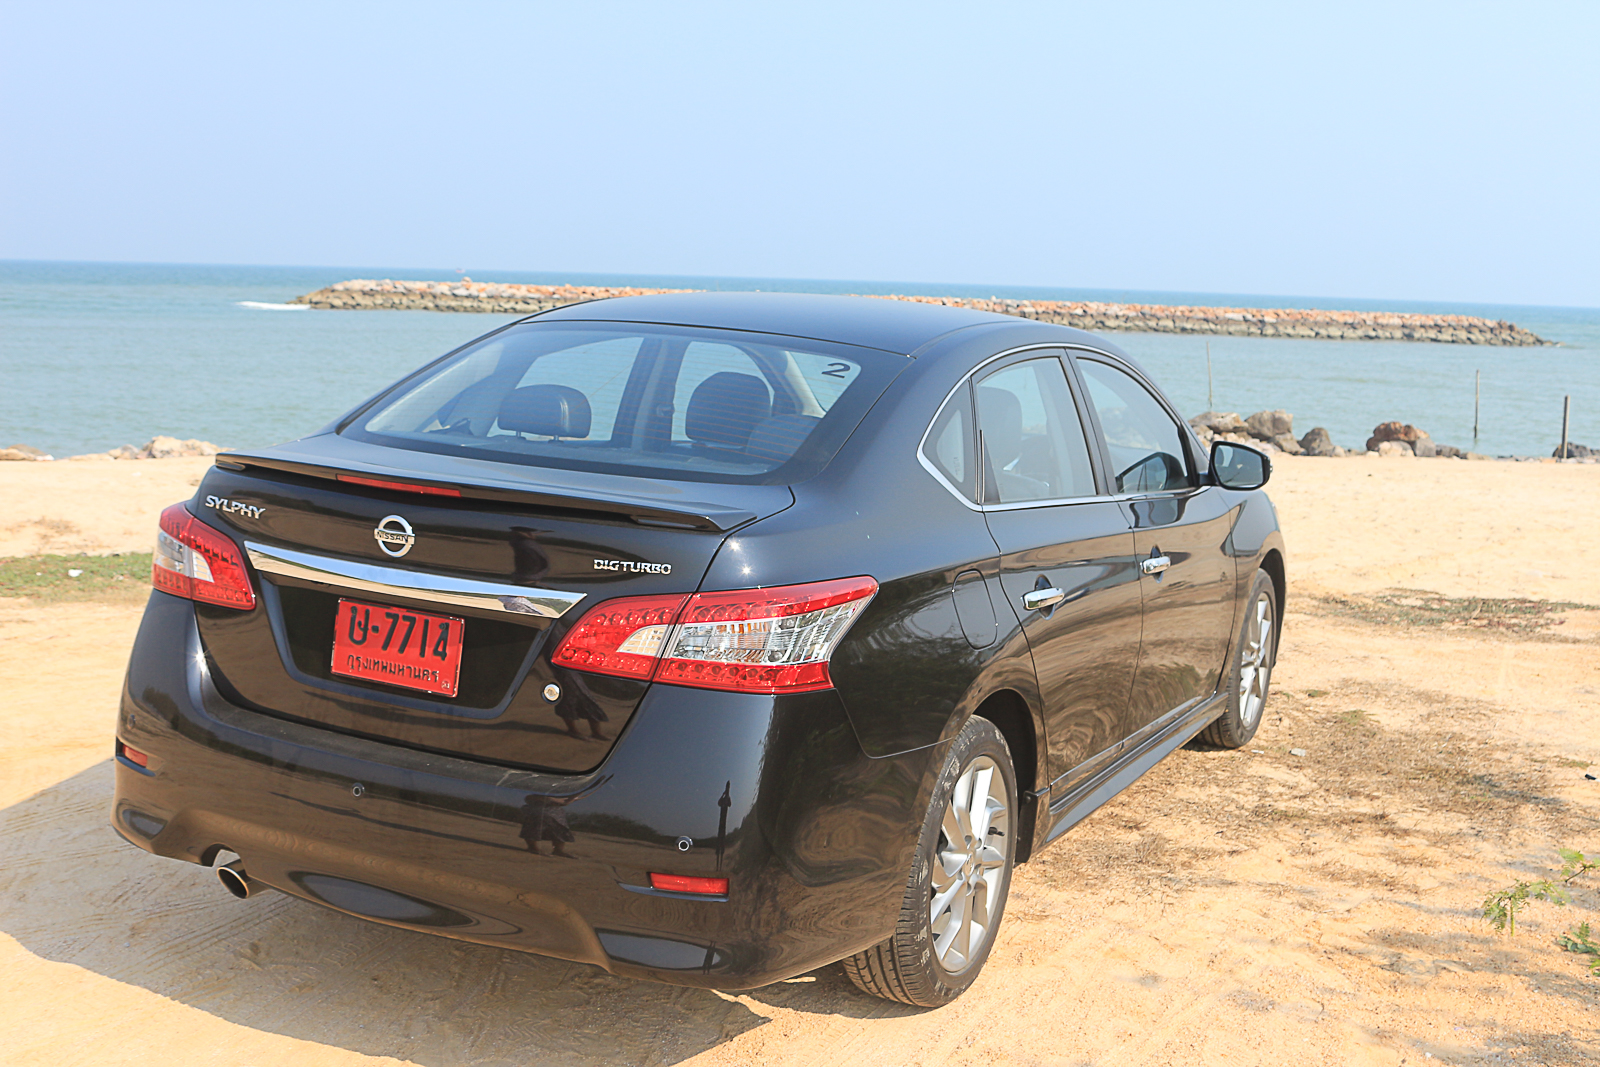 Nissan Sylphy DIG Turbo